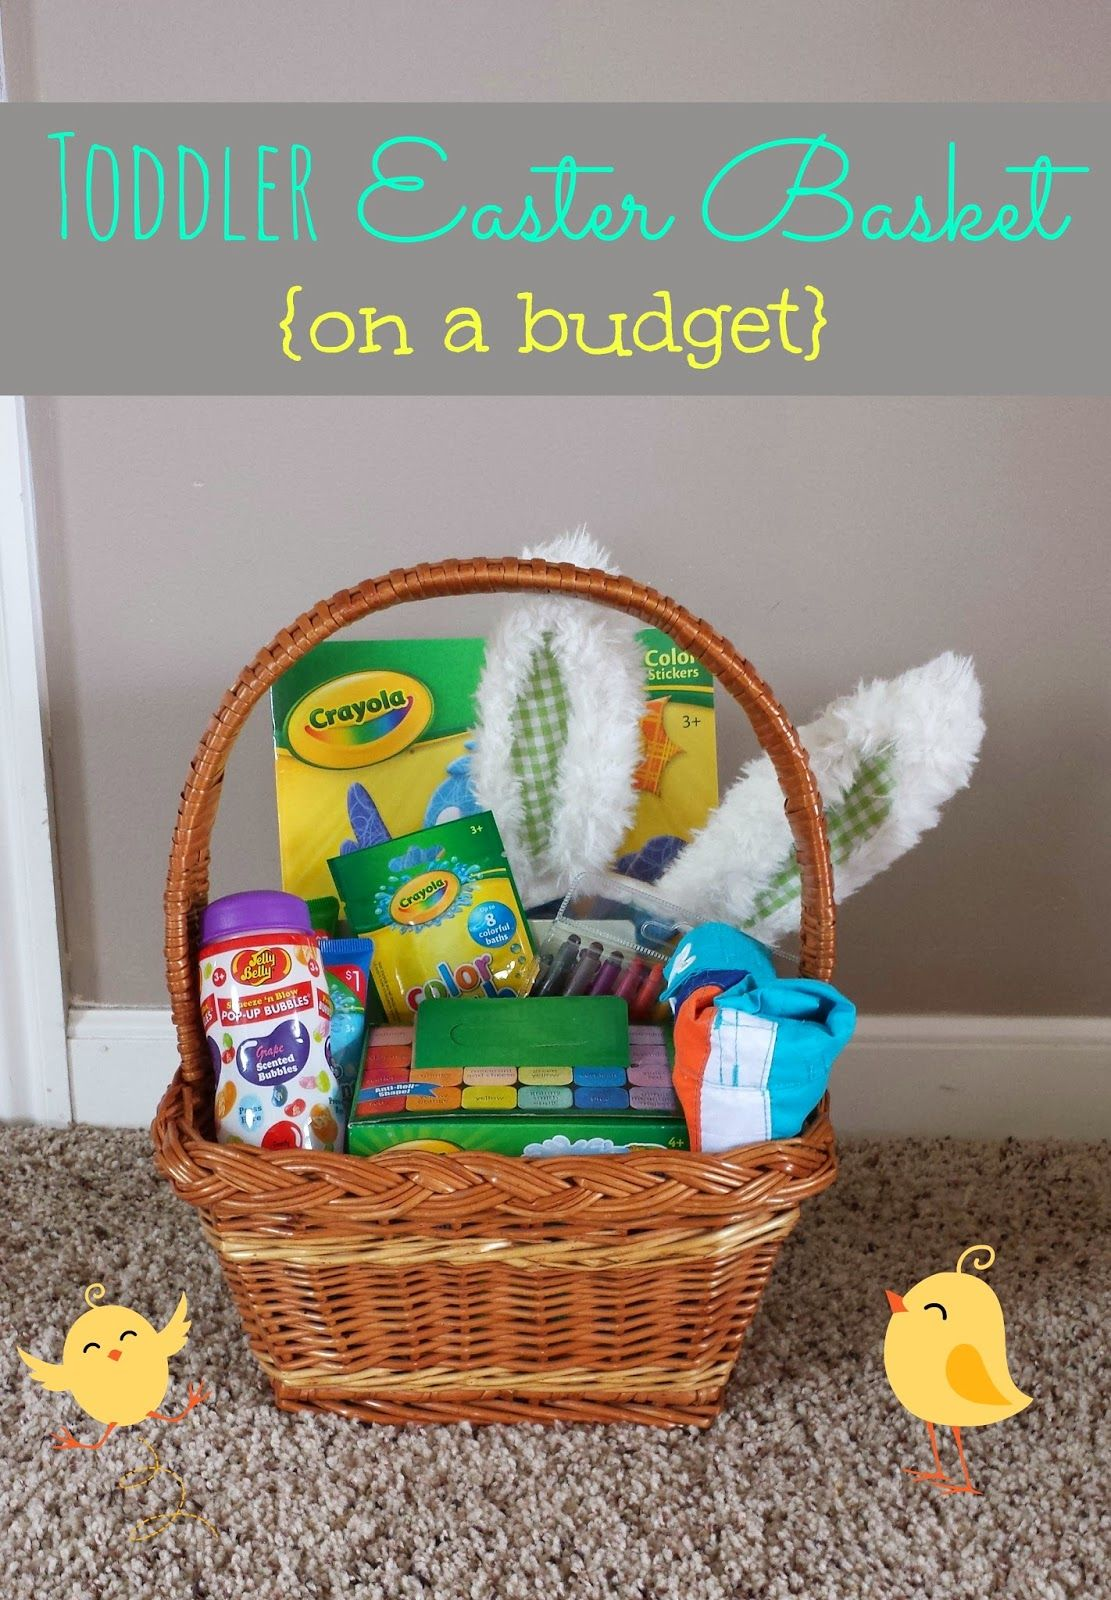 Toddler easter basket ideas on a budget holiday ideas toddler easter basket ideas on a budget negle